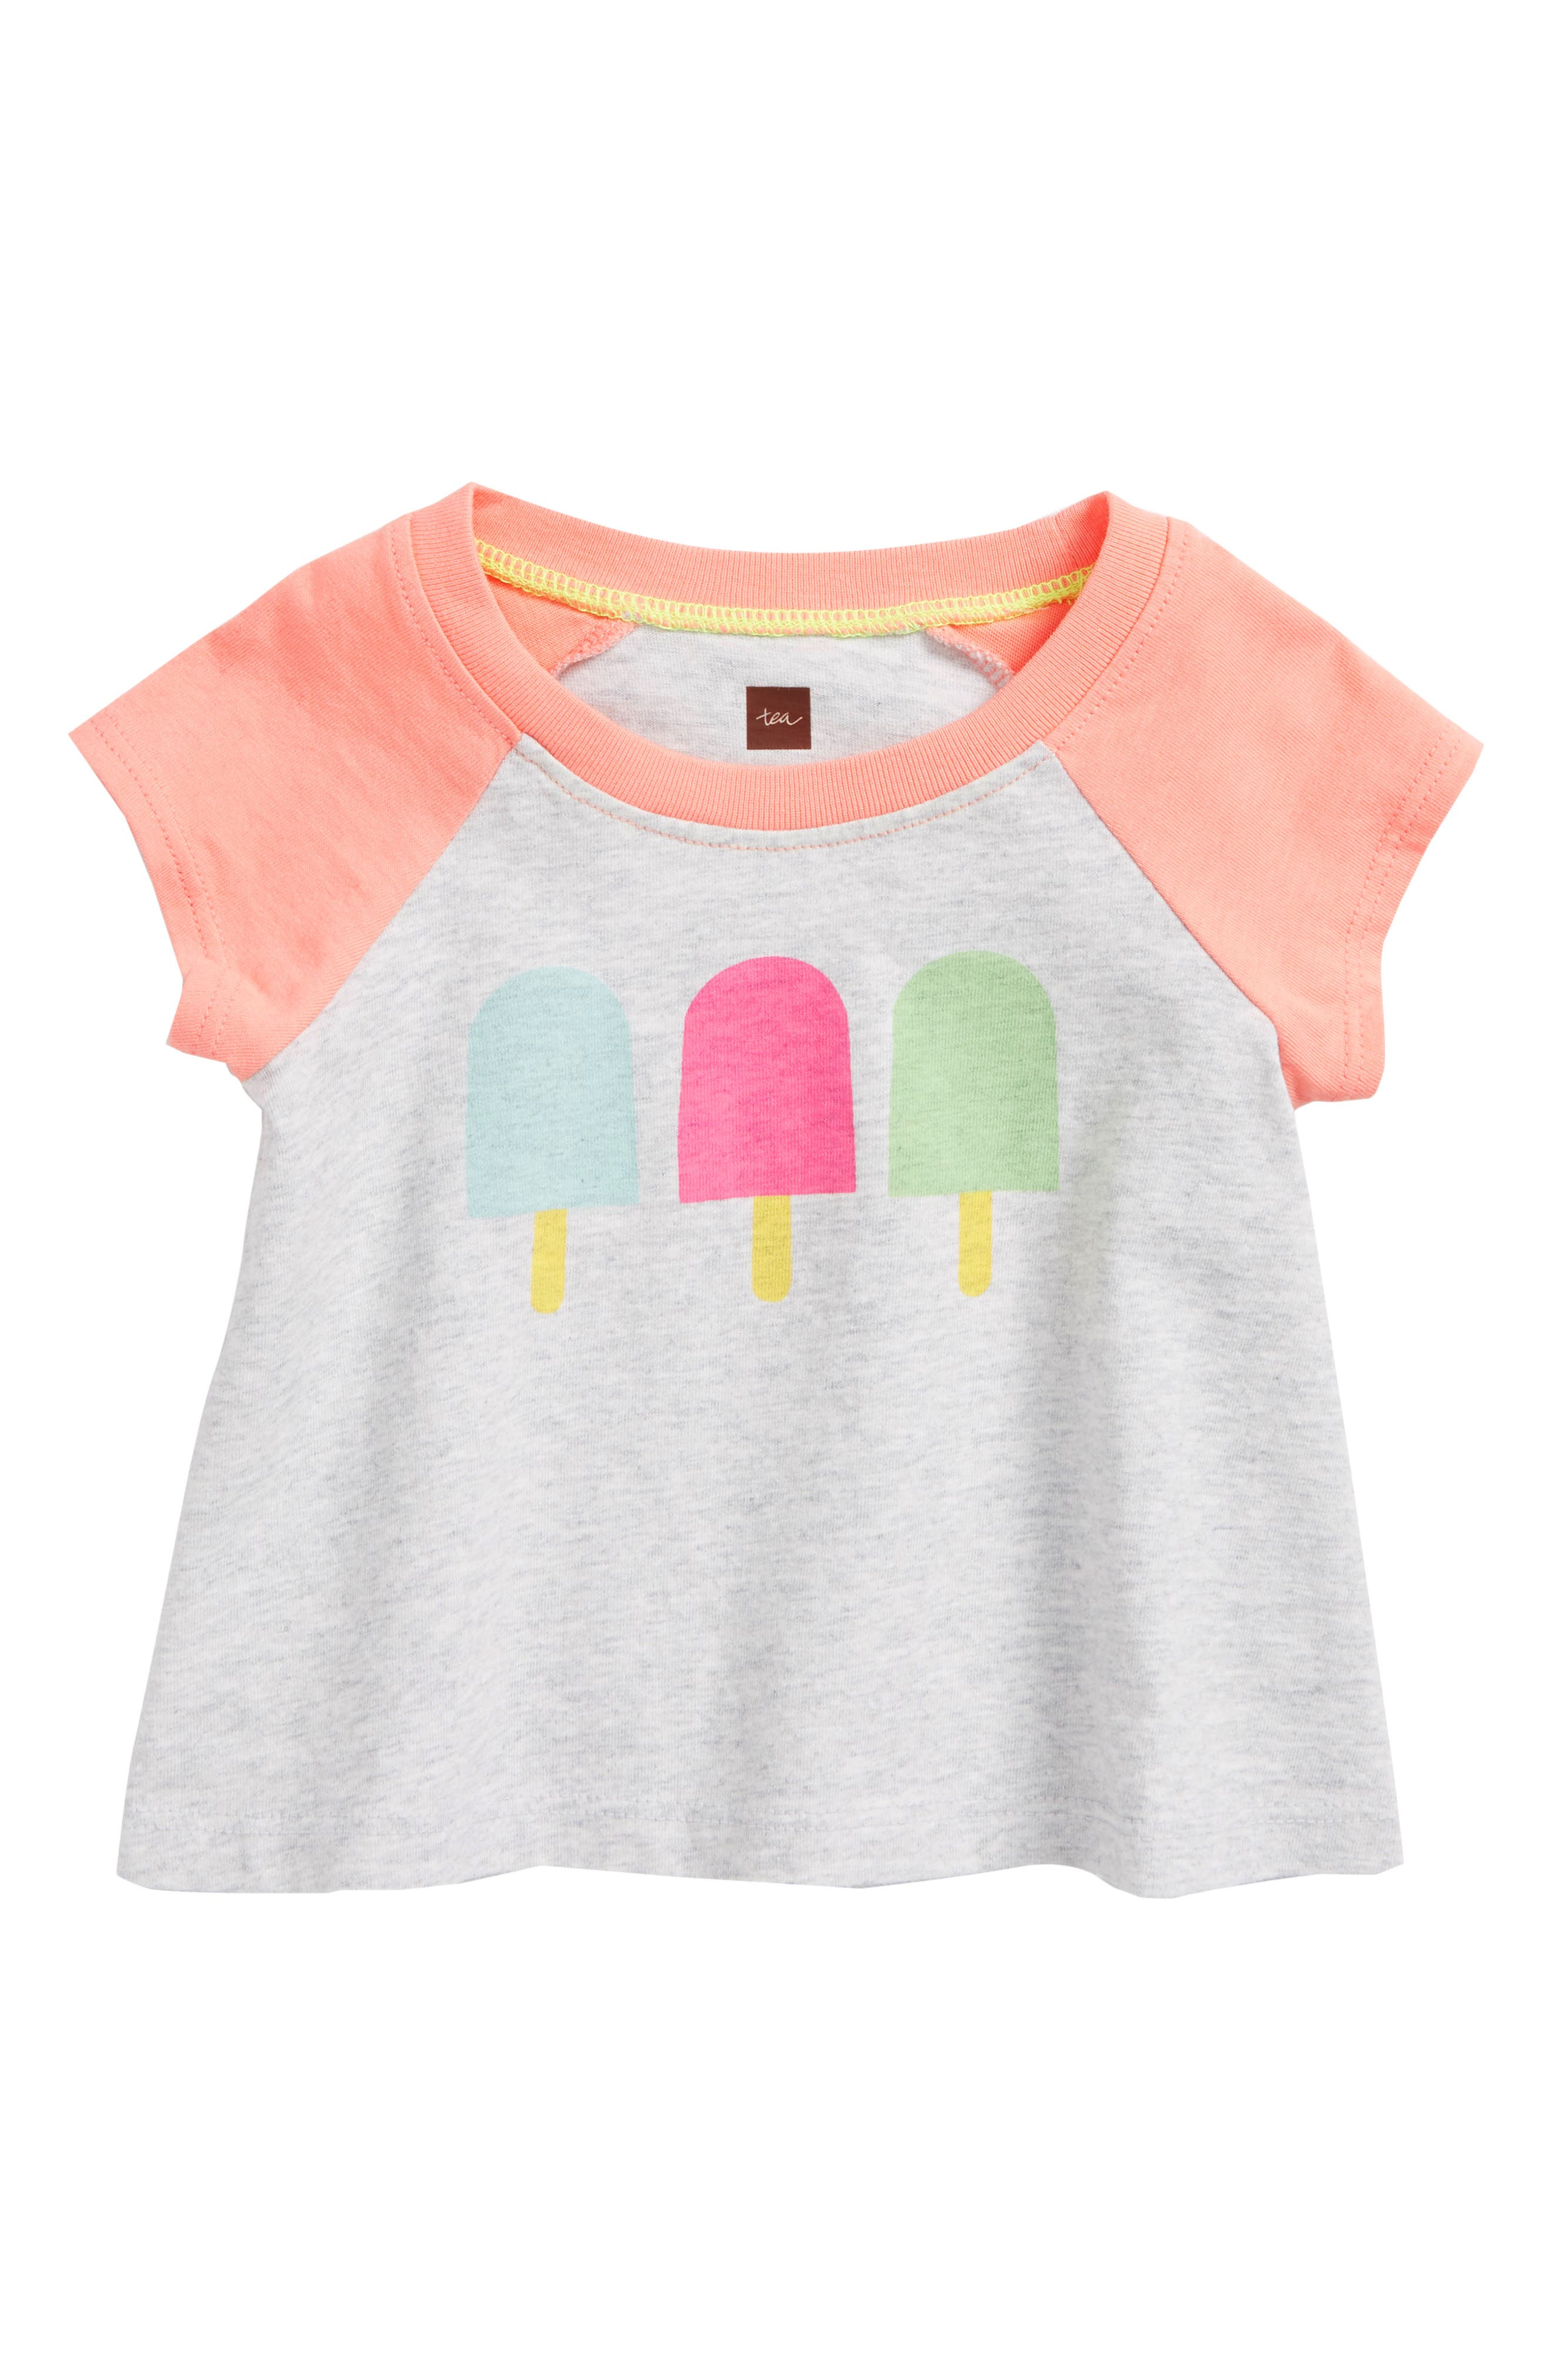 Popsicle Tee,                             Main thumbnail 1, color,                             Light Grey Heather